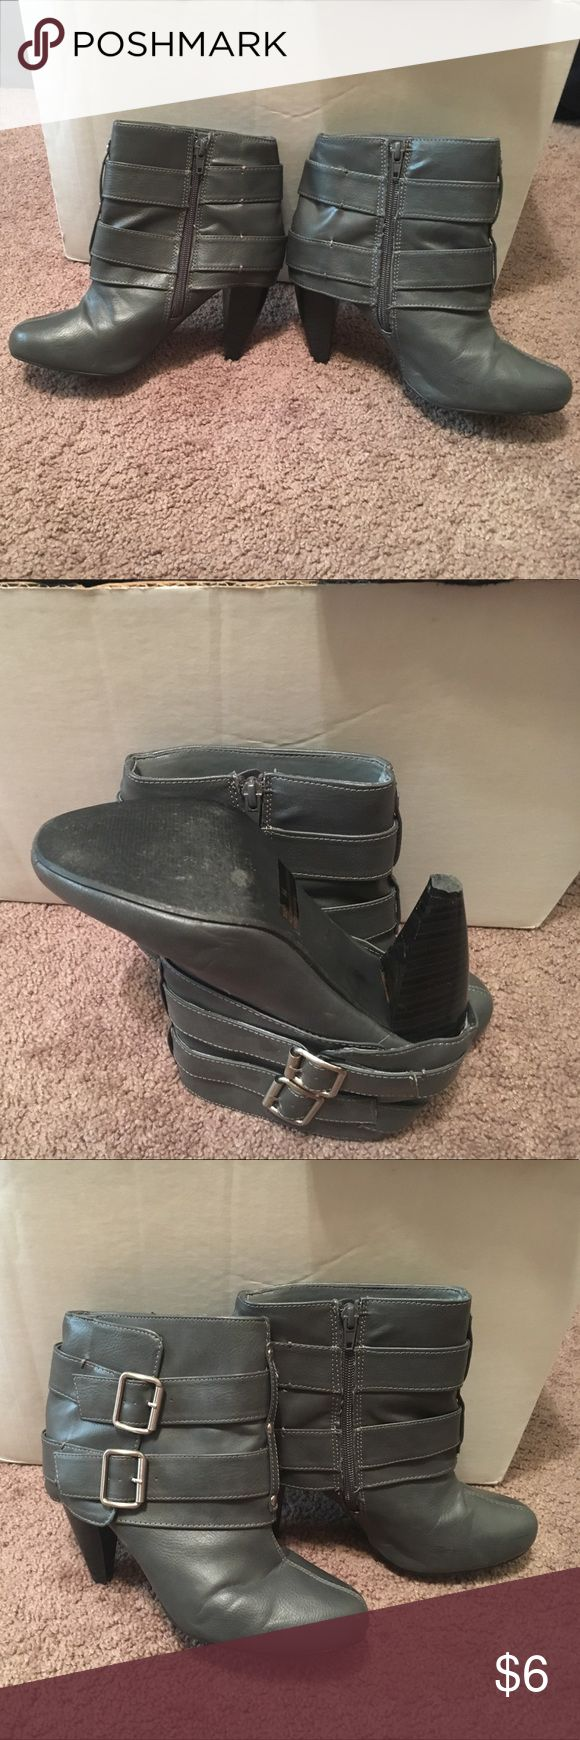 Rue 21 Gray Zip Up High Heel Boots Gray zip up high heel boots made by Rue21. 2 buckles on side for looks. Gently used. If you like any of my listings, please feel free to make a bundle or make an offer :) Rue 21 Shoes Ankle Boots & Booties